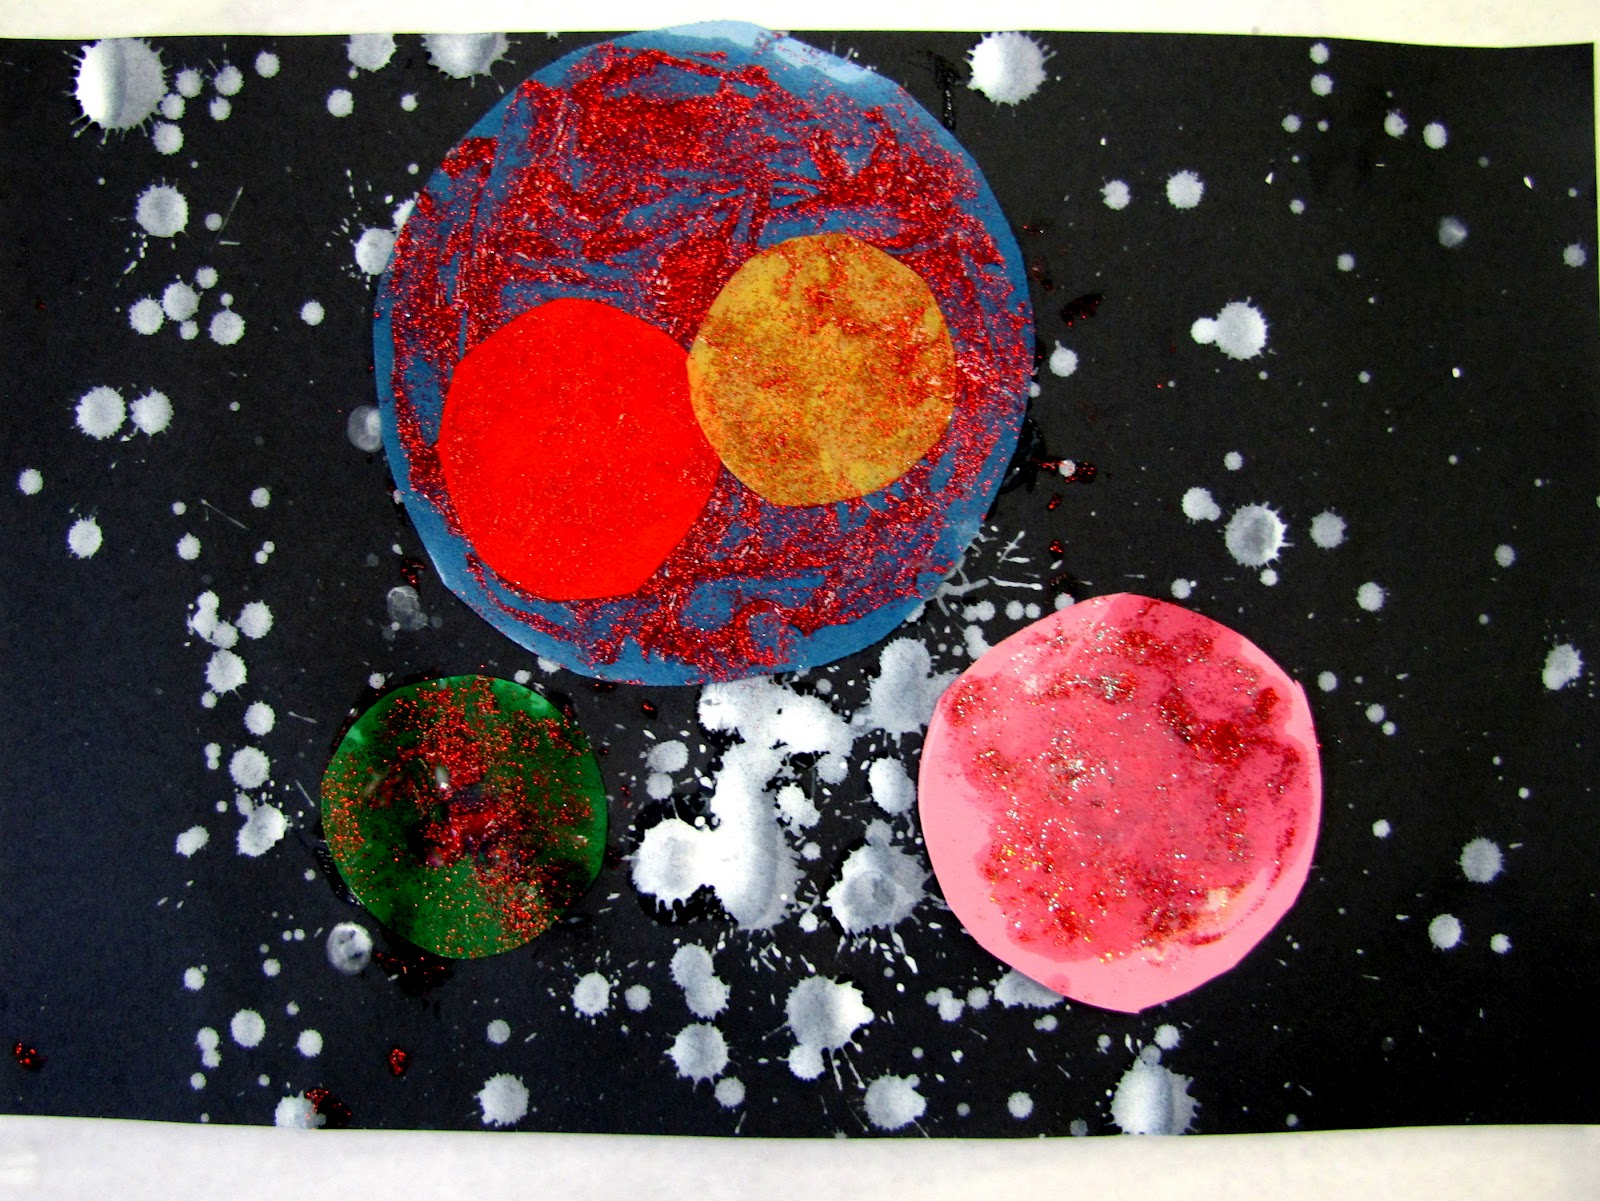 U s enterprise visit and outer space lessons artmuse67 for Outer painting design